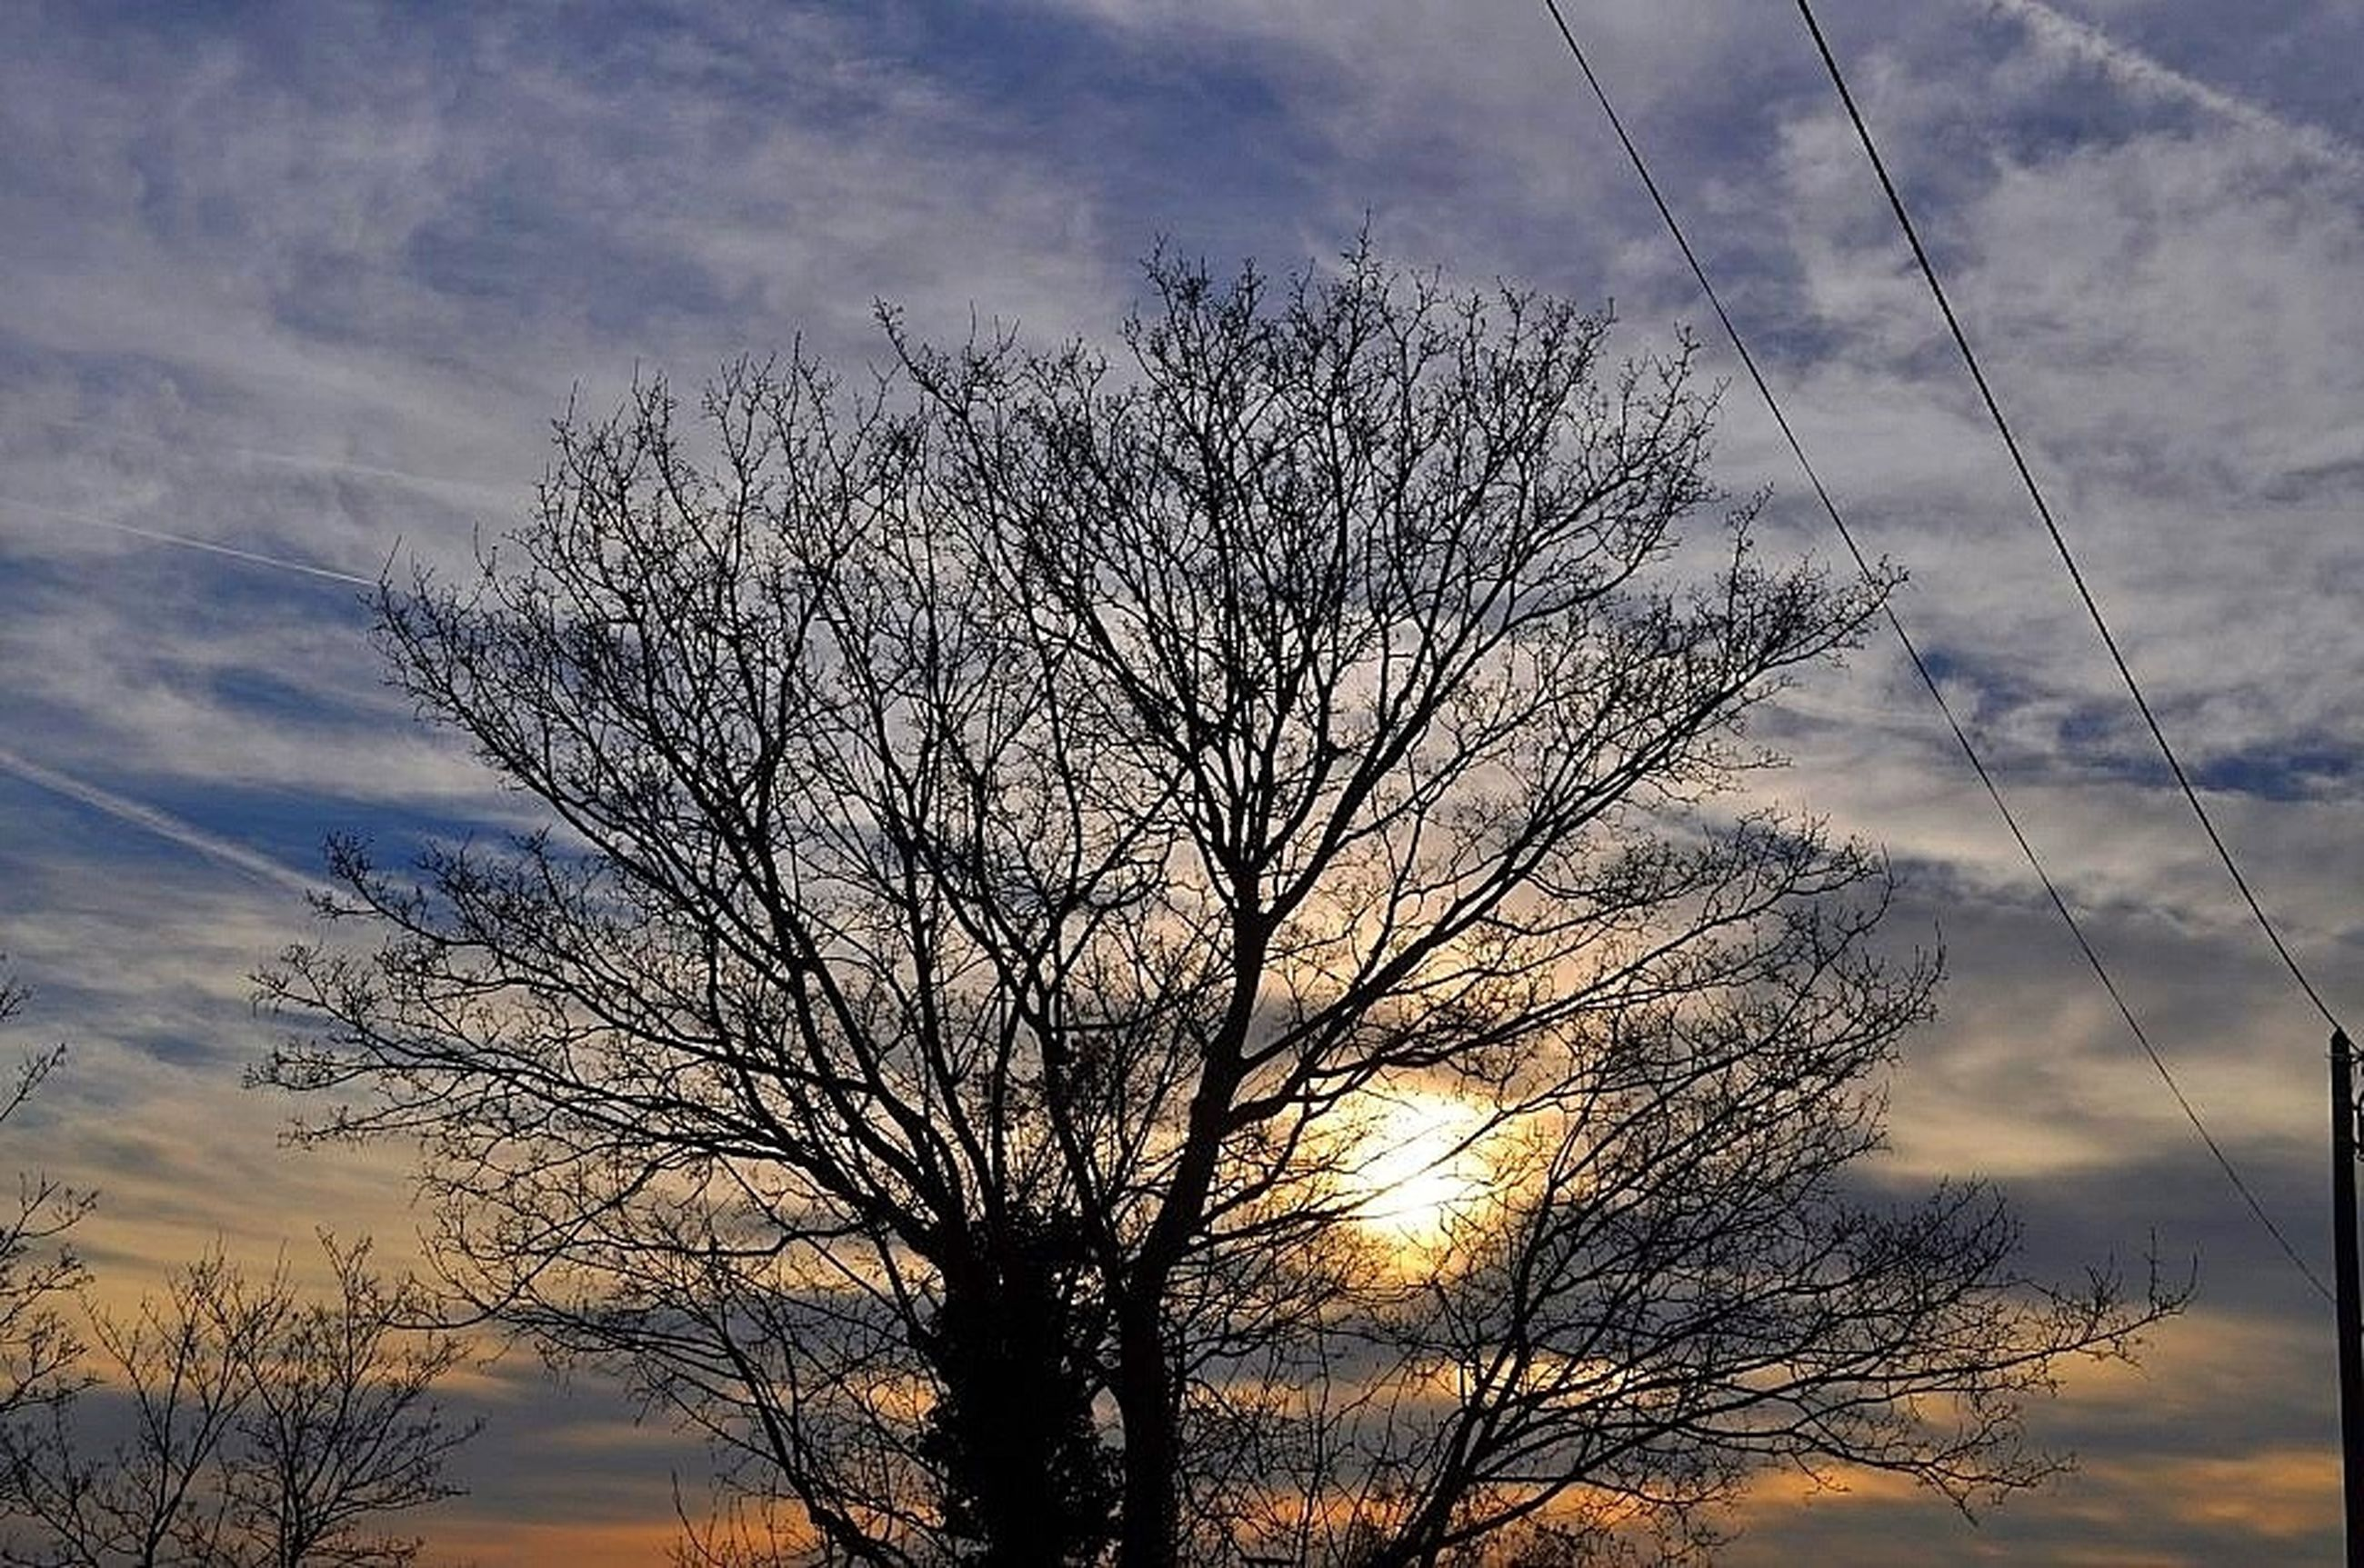 silhouette, bare tree, sunset, sky, low angle view, tree, tranquility, branch, beauty in nature, cloud - sky, scenics, tranquil scene, nature, sun, cloud, cloudy, idyllic, outdoors, sunlight, no people